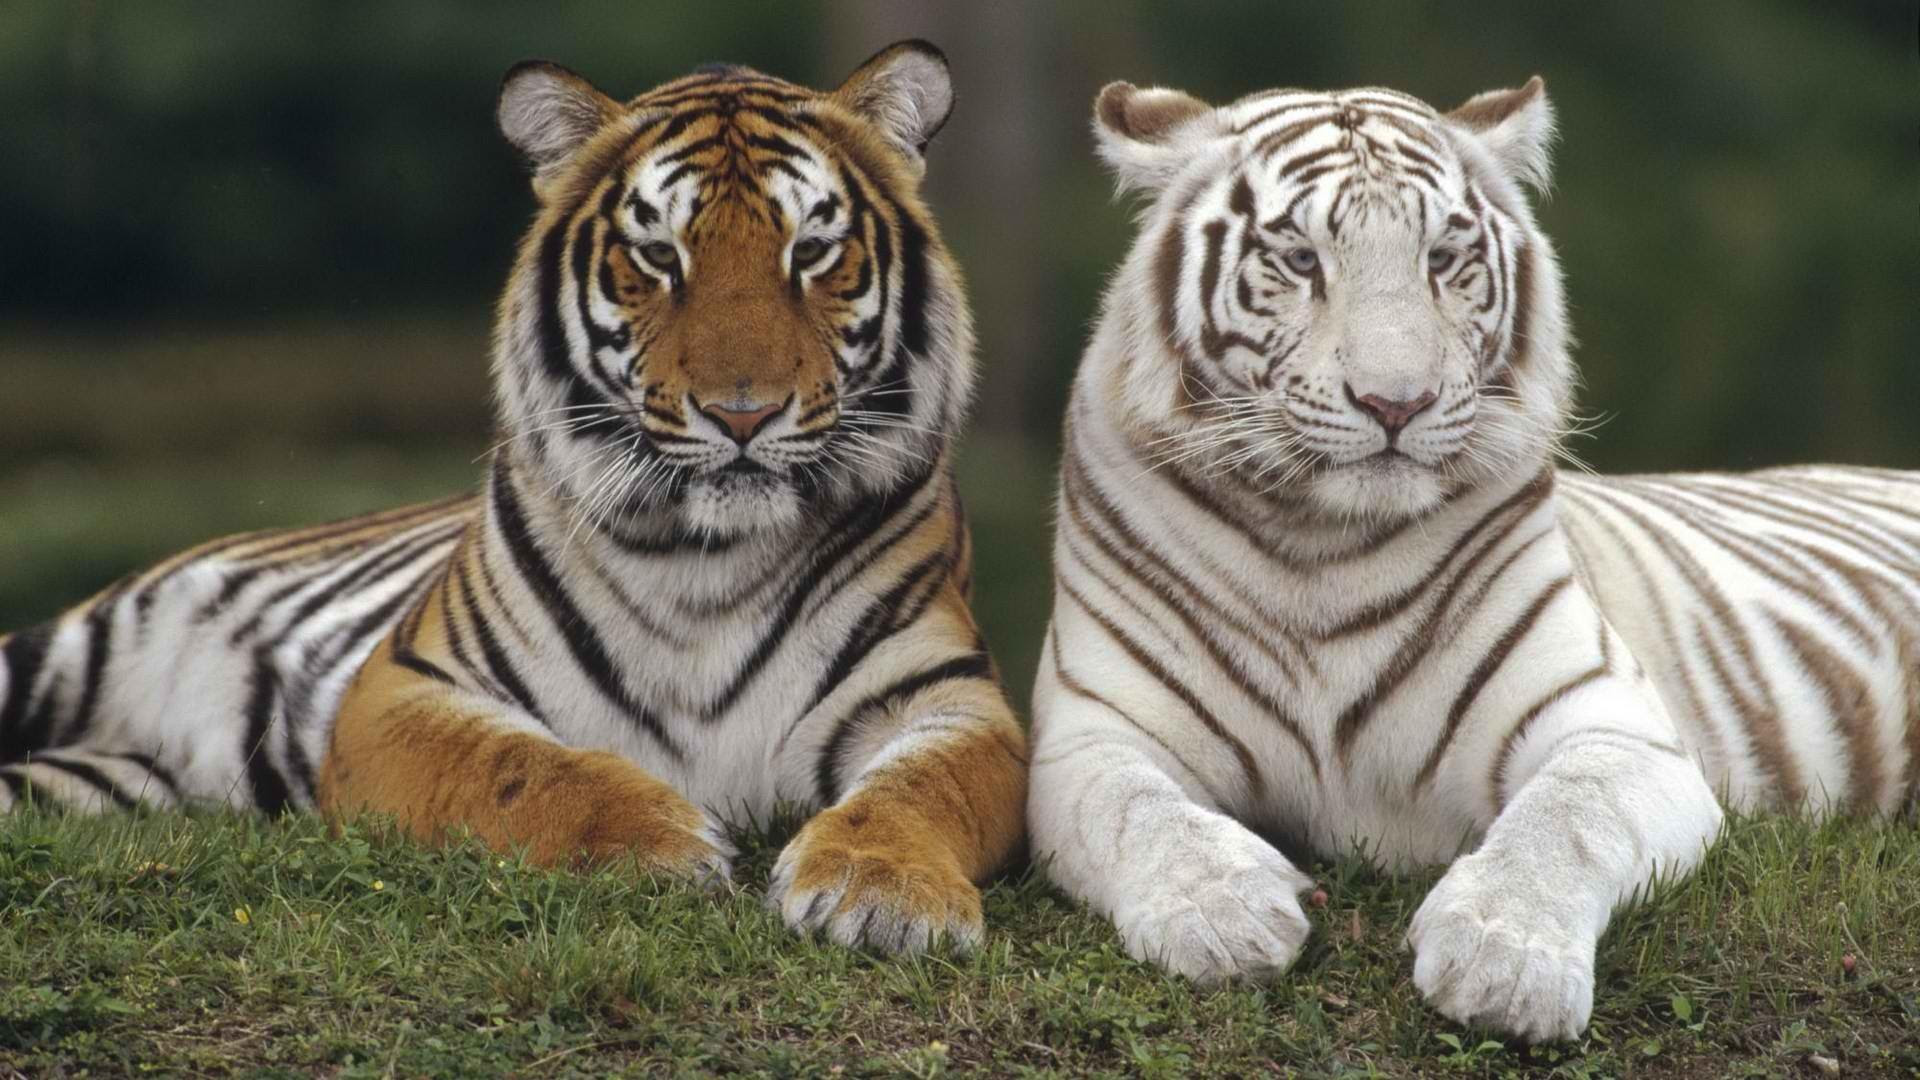 Download Best Tiger Animal Wallpaper 23 Wallpapers Images Free Latestwall